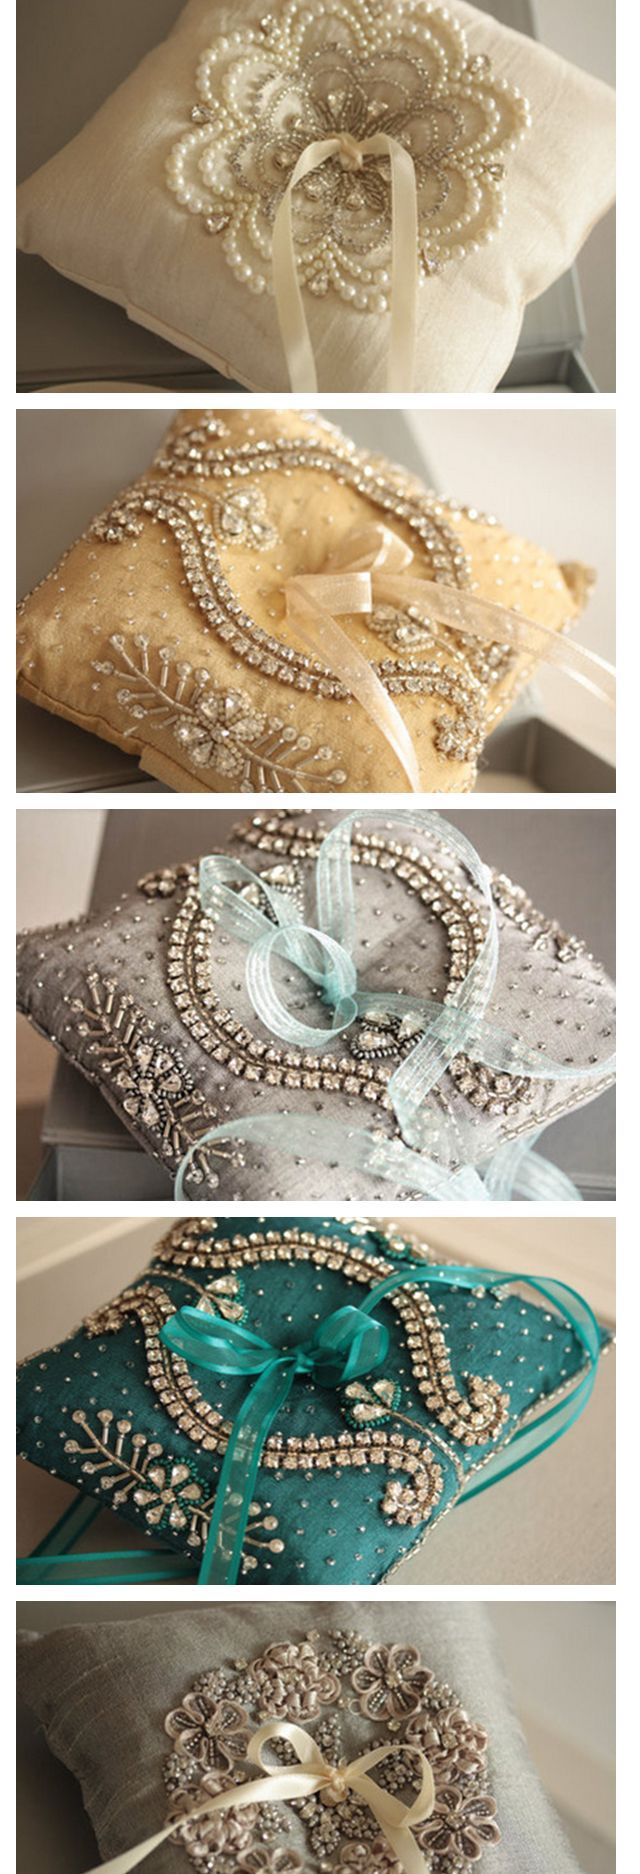 Ring cushions with bling will go with our ringbearers little indian